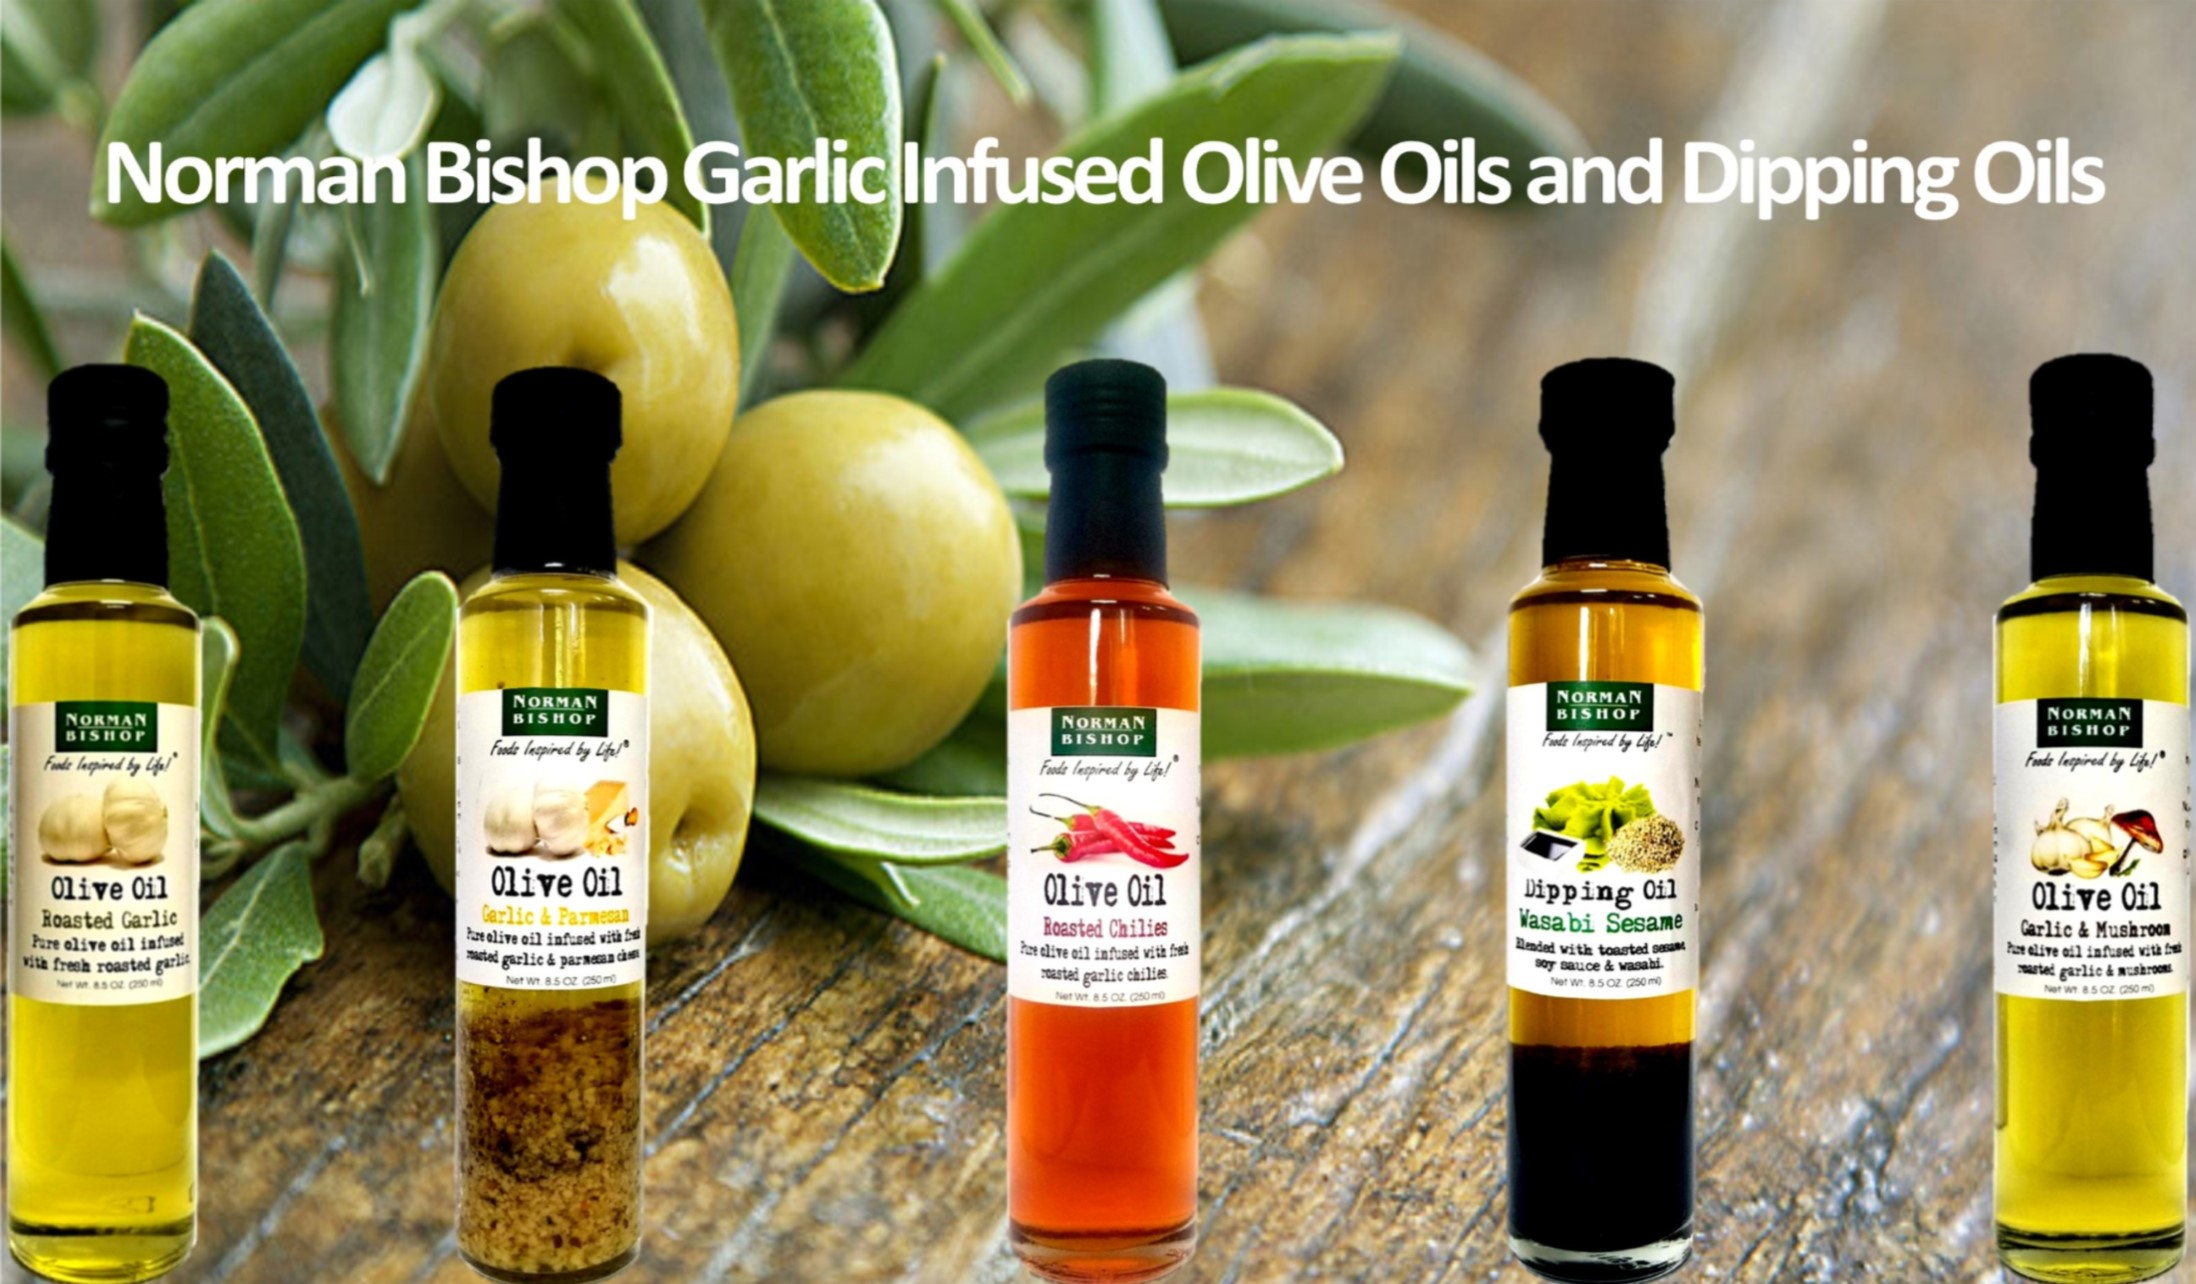 Norman Bishop Olive Oils and Dipping Oils